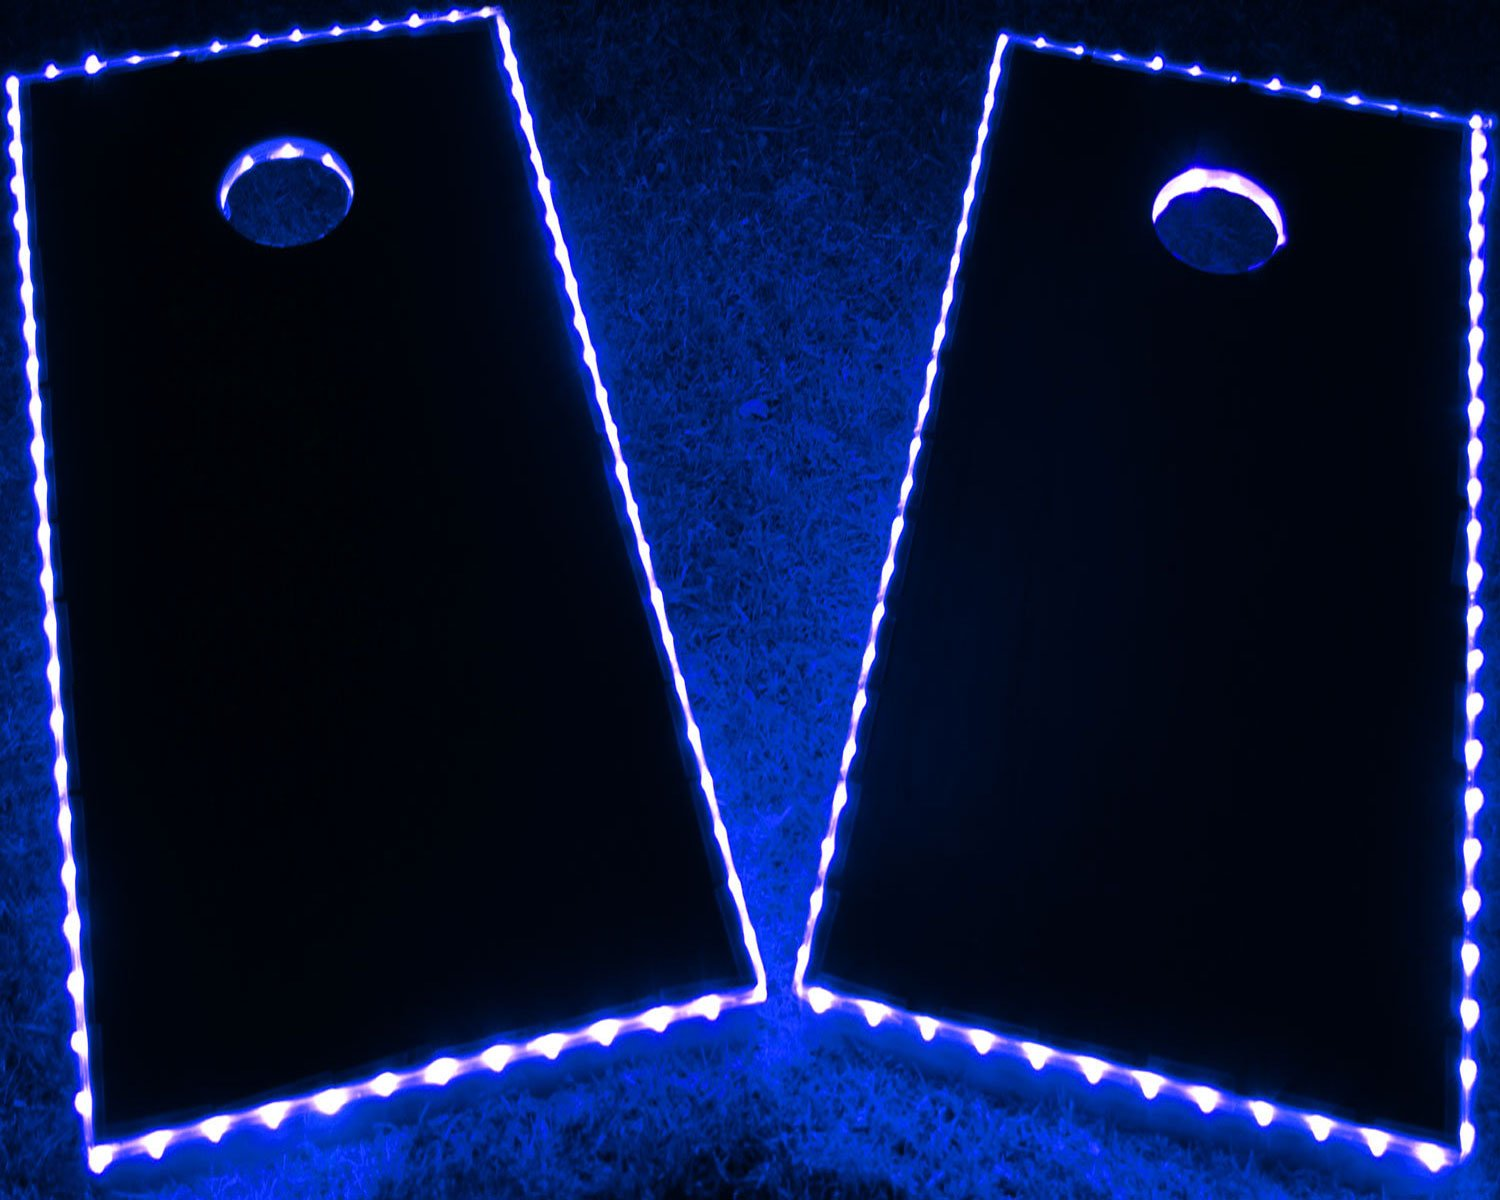 GlowCity LED Cornhole Board Lights - Ultra Bright Lights for Corn Hole and Board, Fits 2 x Boards - Waterproof and Durable Cable Ideal for Family Outdoor Games or Backyard Glow in The Dark Fun (Blue) by GlowCity